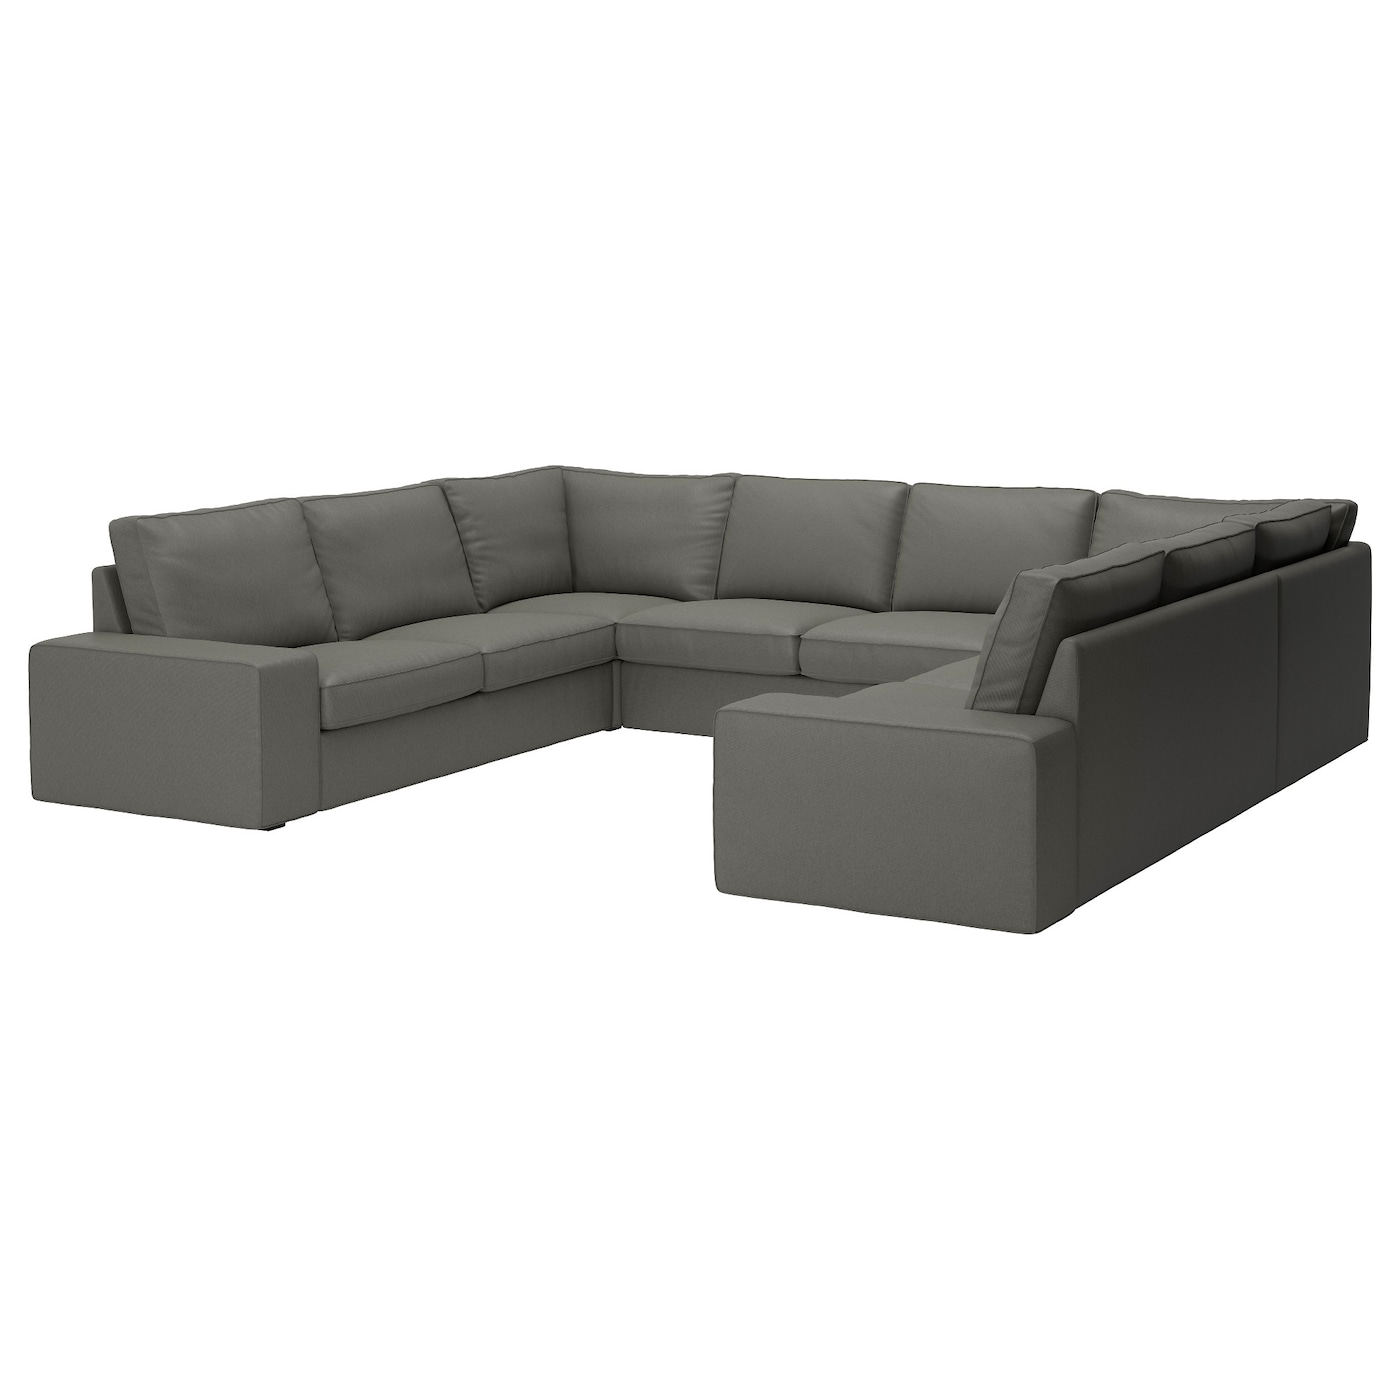 kivik u shaped sofa 6 seat borred grey green ikea. Black Bedroom Furniture Sets. Home Design Ideas